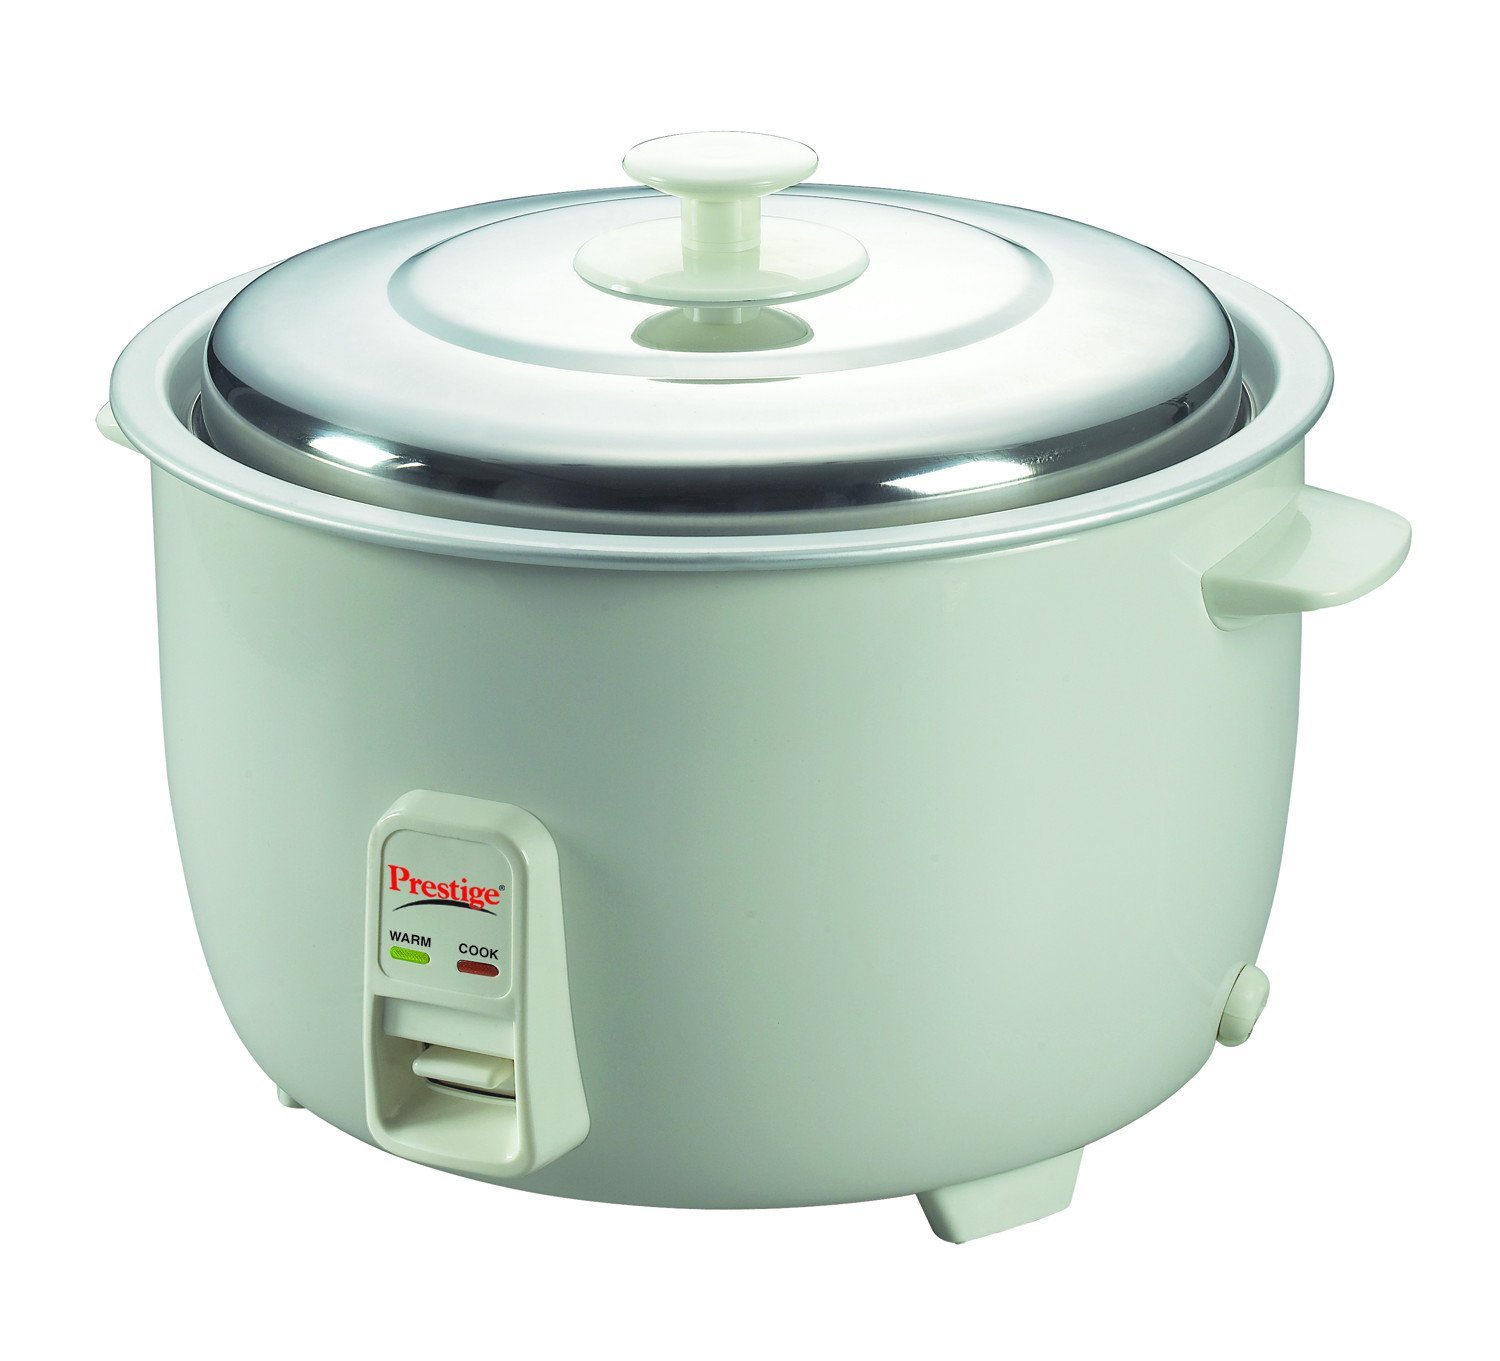 Buy Prestige PRWO 4.2-2 1650-Watt Electric Rice Cooker Online at Low Prices  in India - Amazon.in